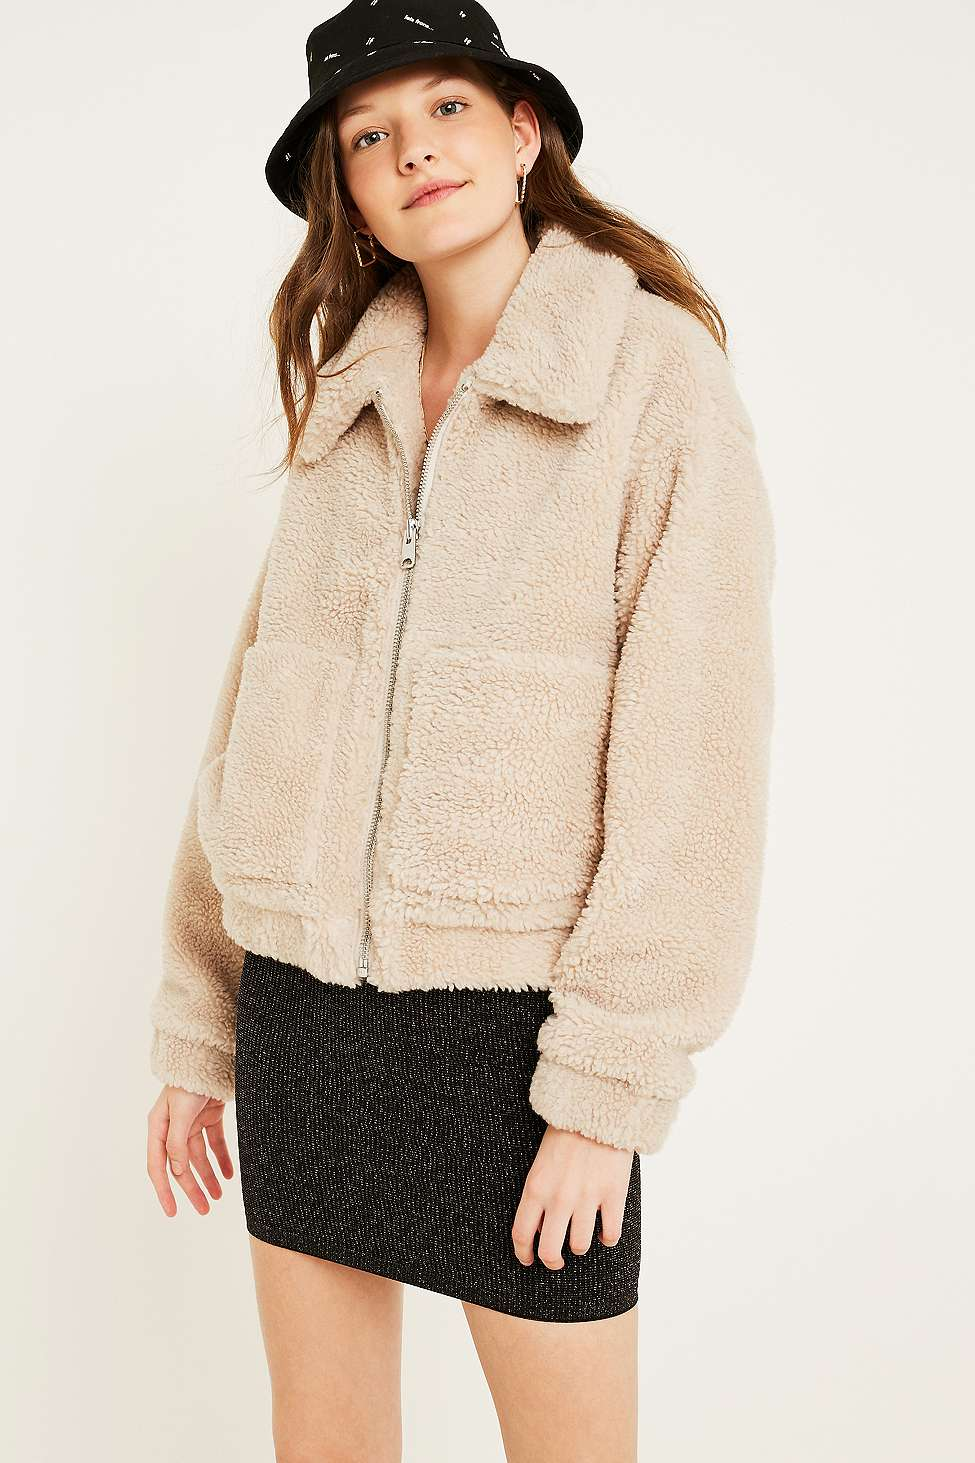 Uo Cream Teddy Crop Jacket Urban Outfitters Uk